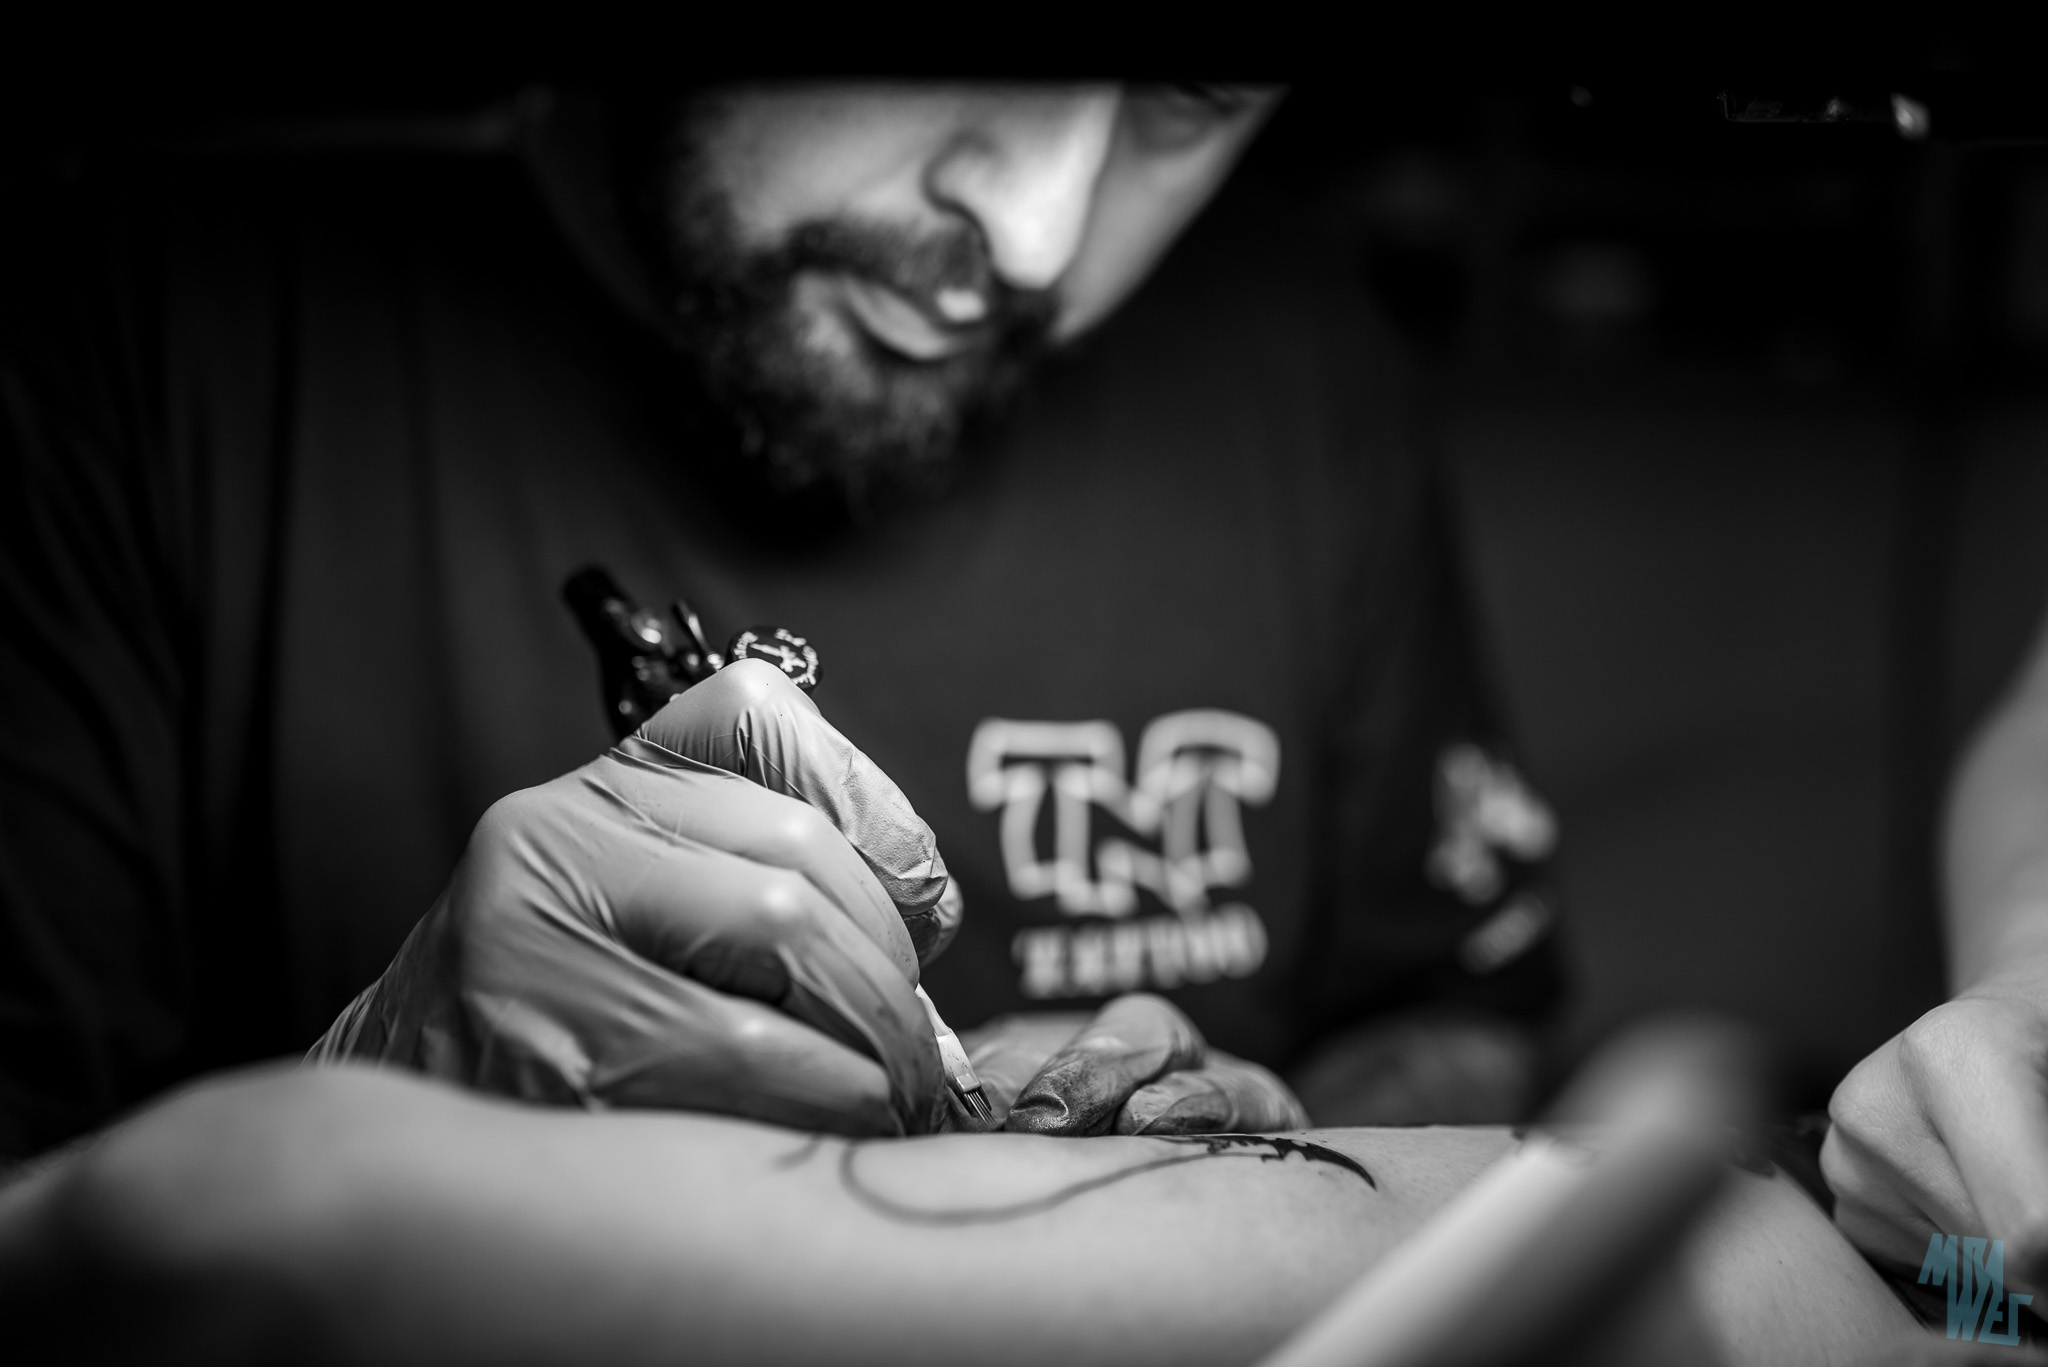 Nat_tattoo_Tešlo__020__web